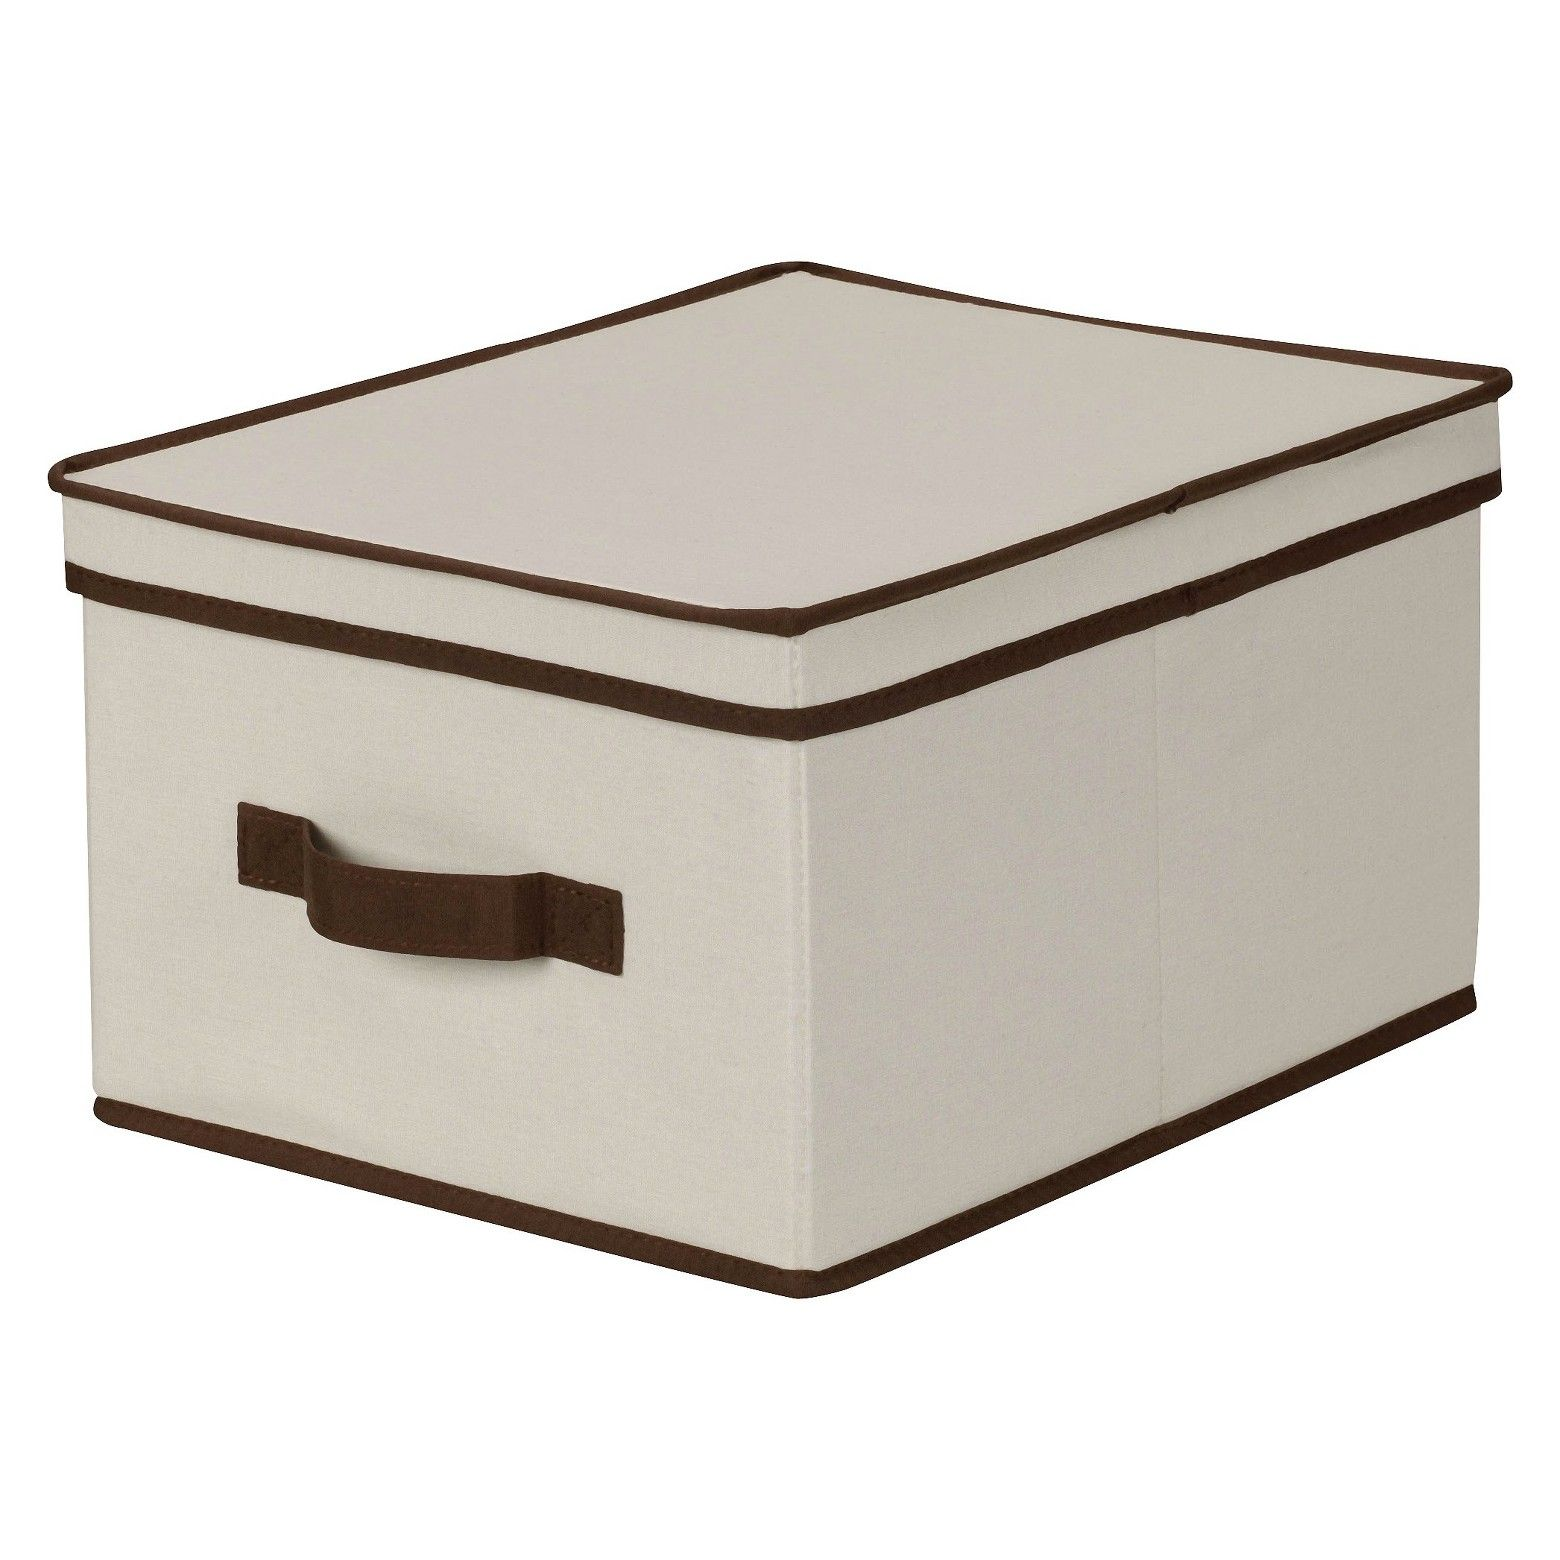 Decorative Lidded Storage Boxes Household Essentials Large Canvas Decorative Storage Box  Natural